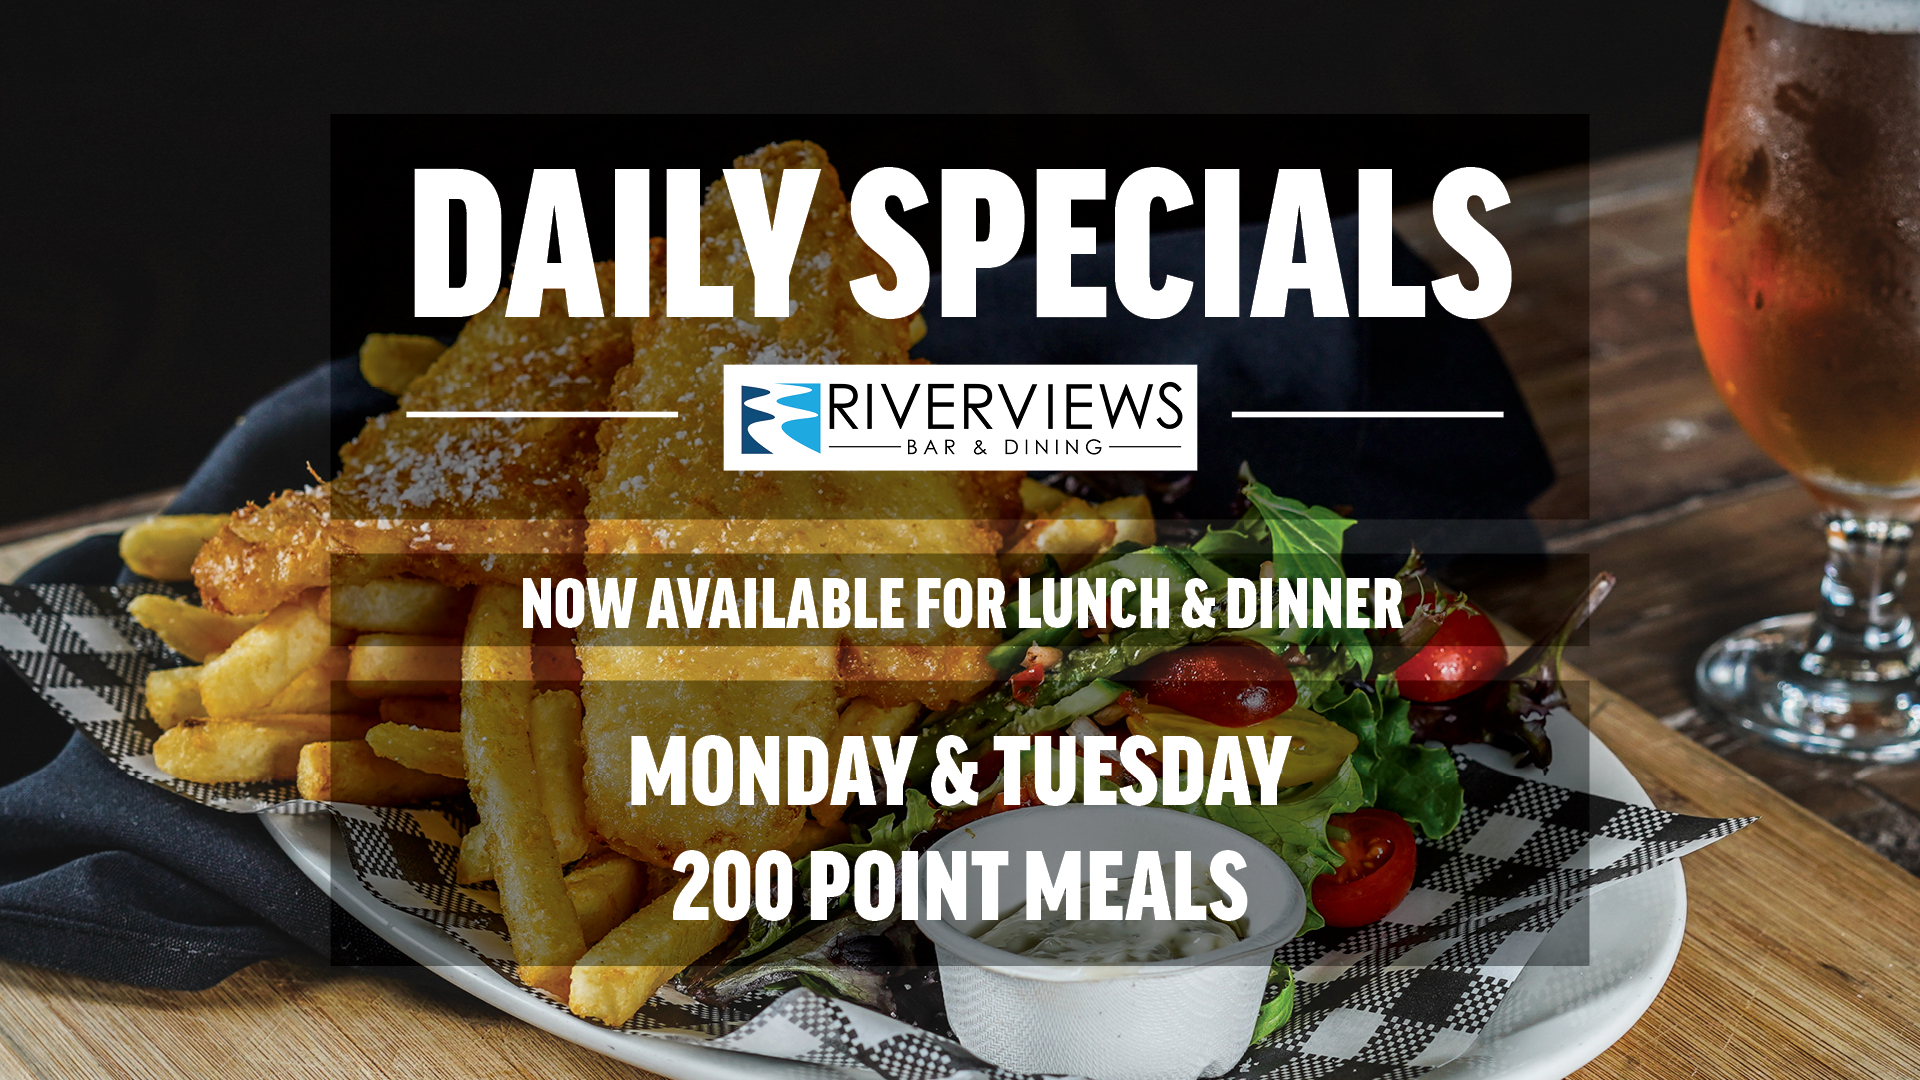 Daily Specials MON TUES Media Screen LS